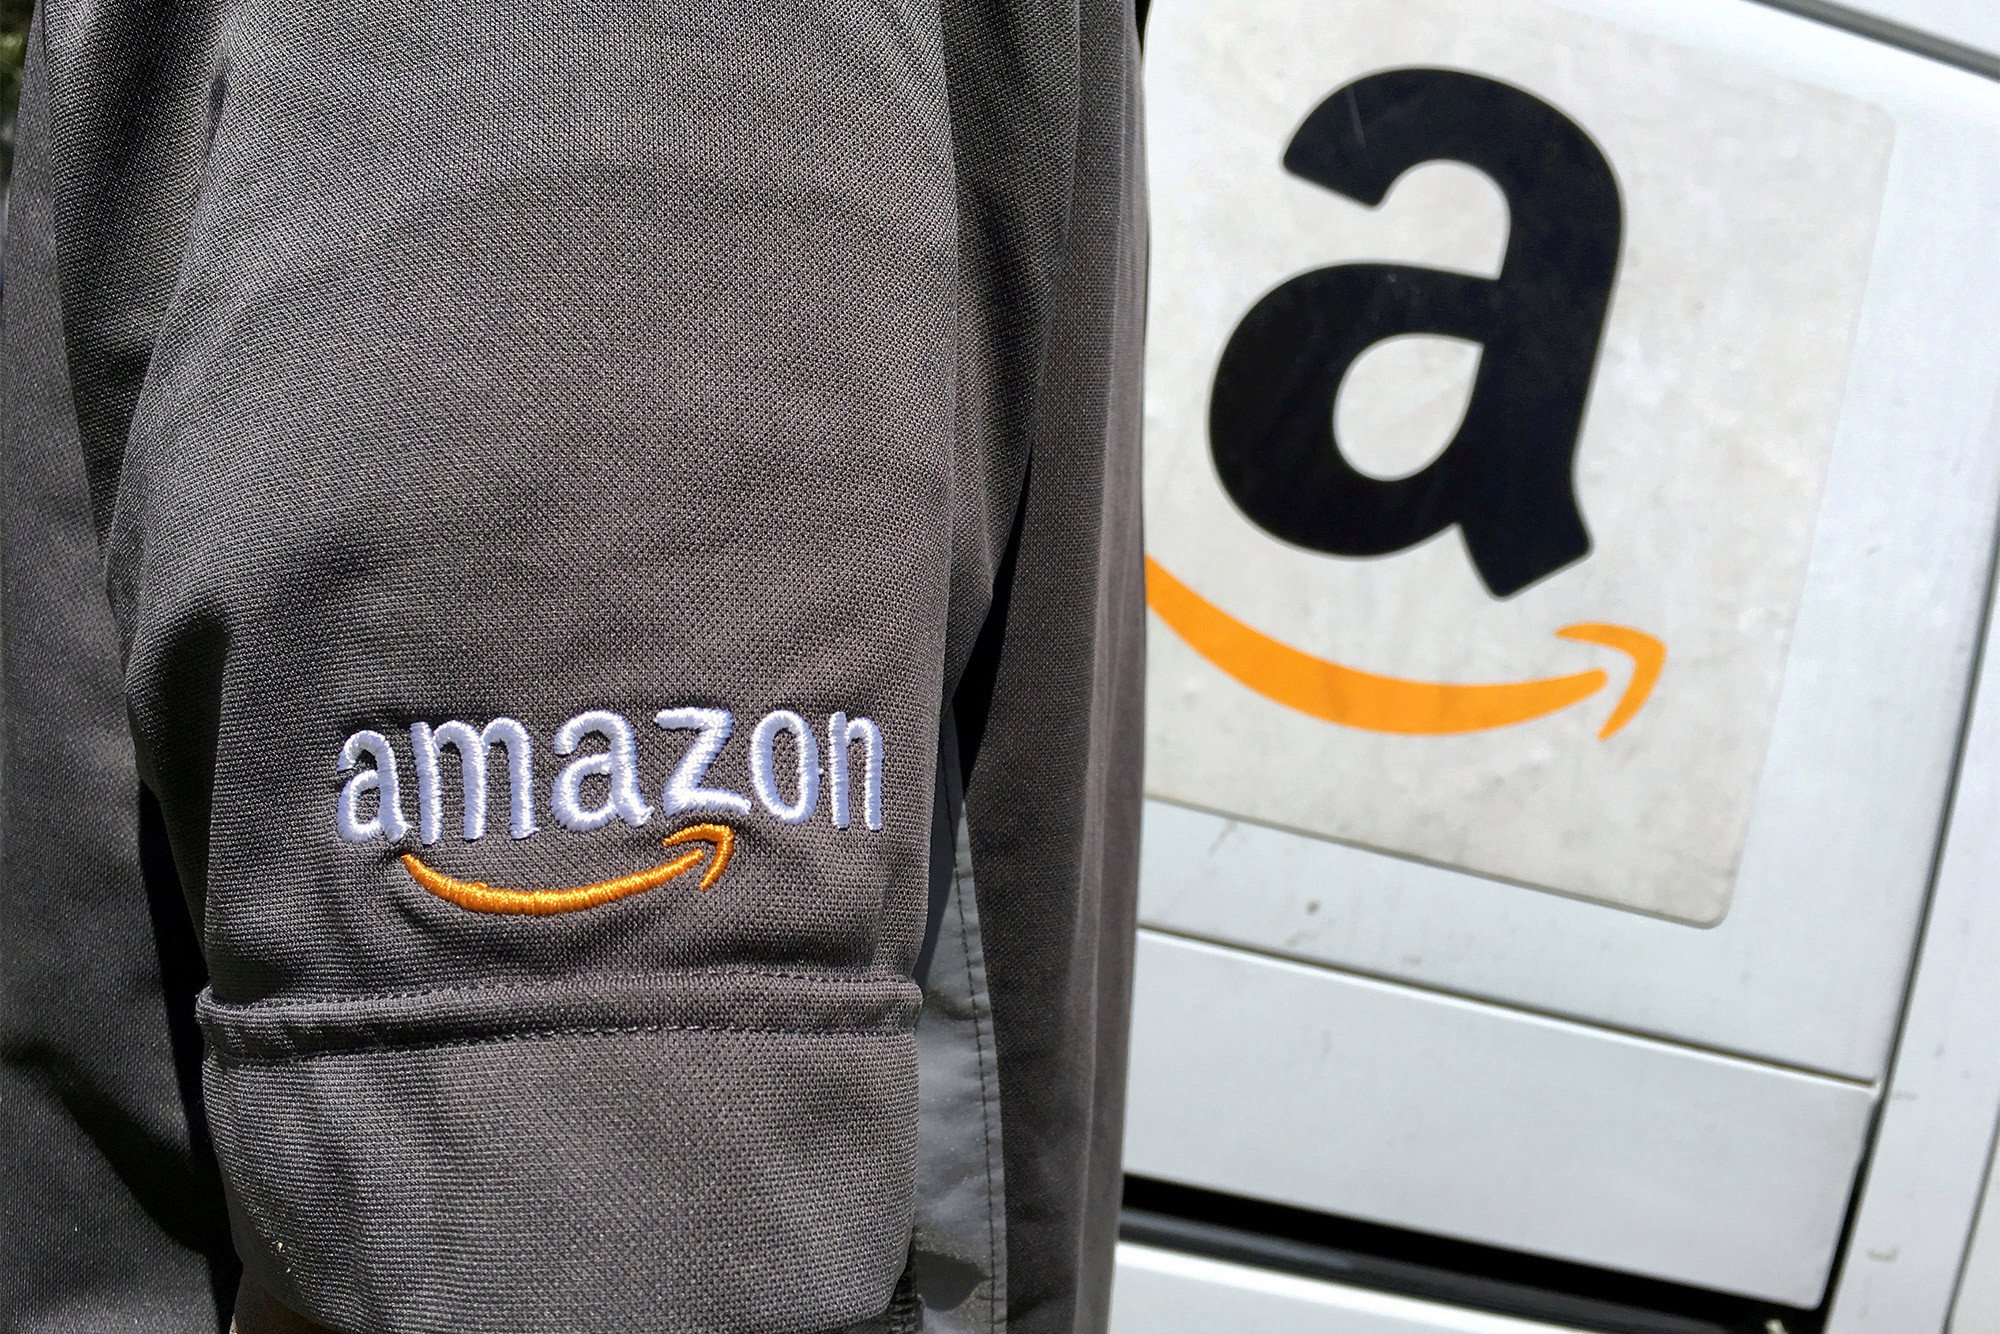 Amazon has come up with a novel way to avoid 'porch pirates'